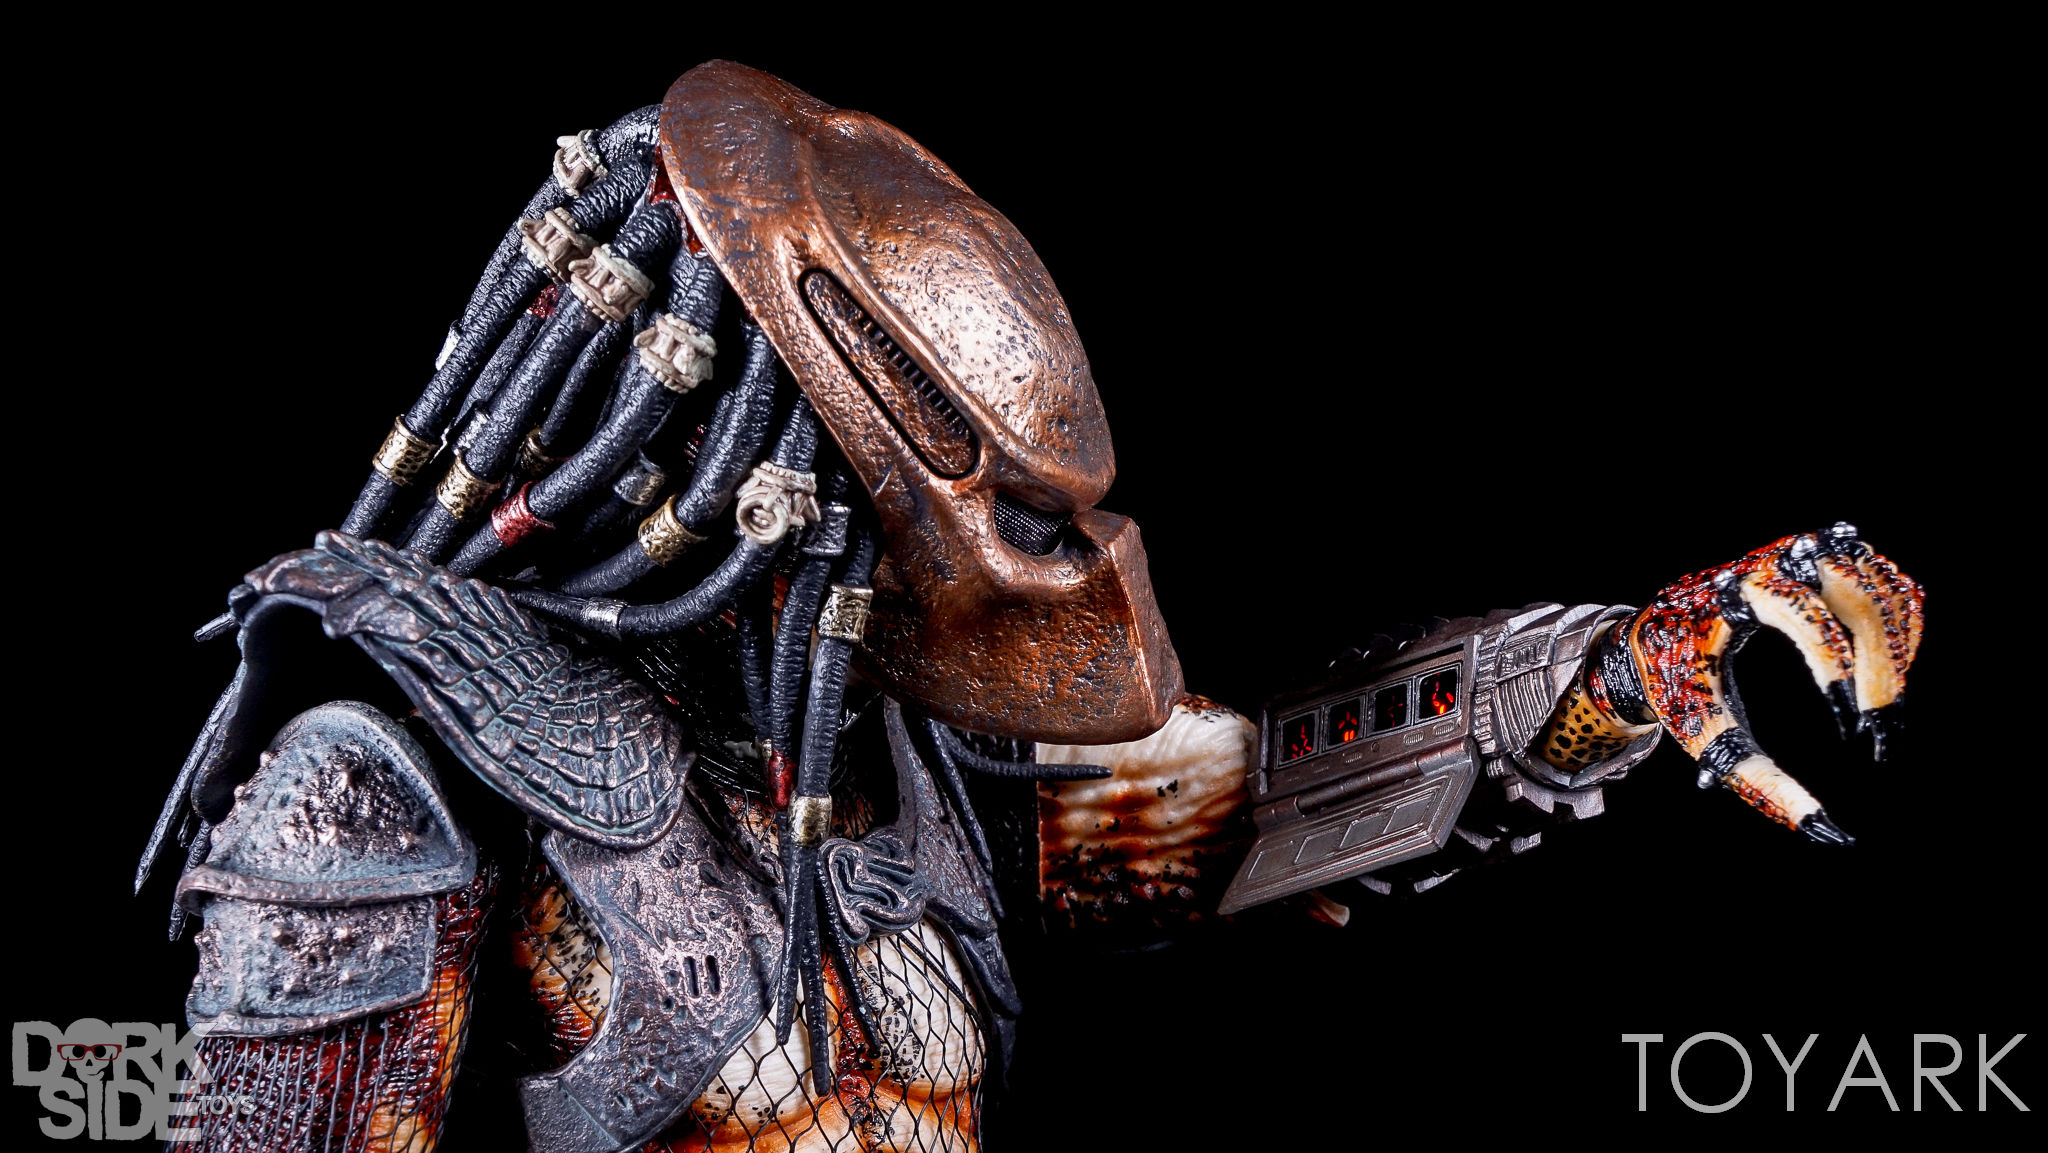 http://news.toyark.com/wp-content/uploads/sites/4/2016/12/NECA-20-Inch-City-Hunter-Predator-059.jpg